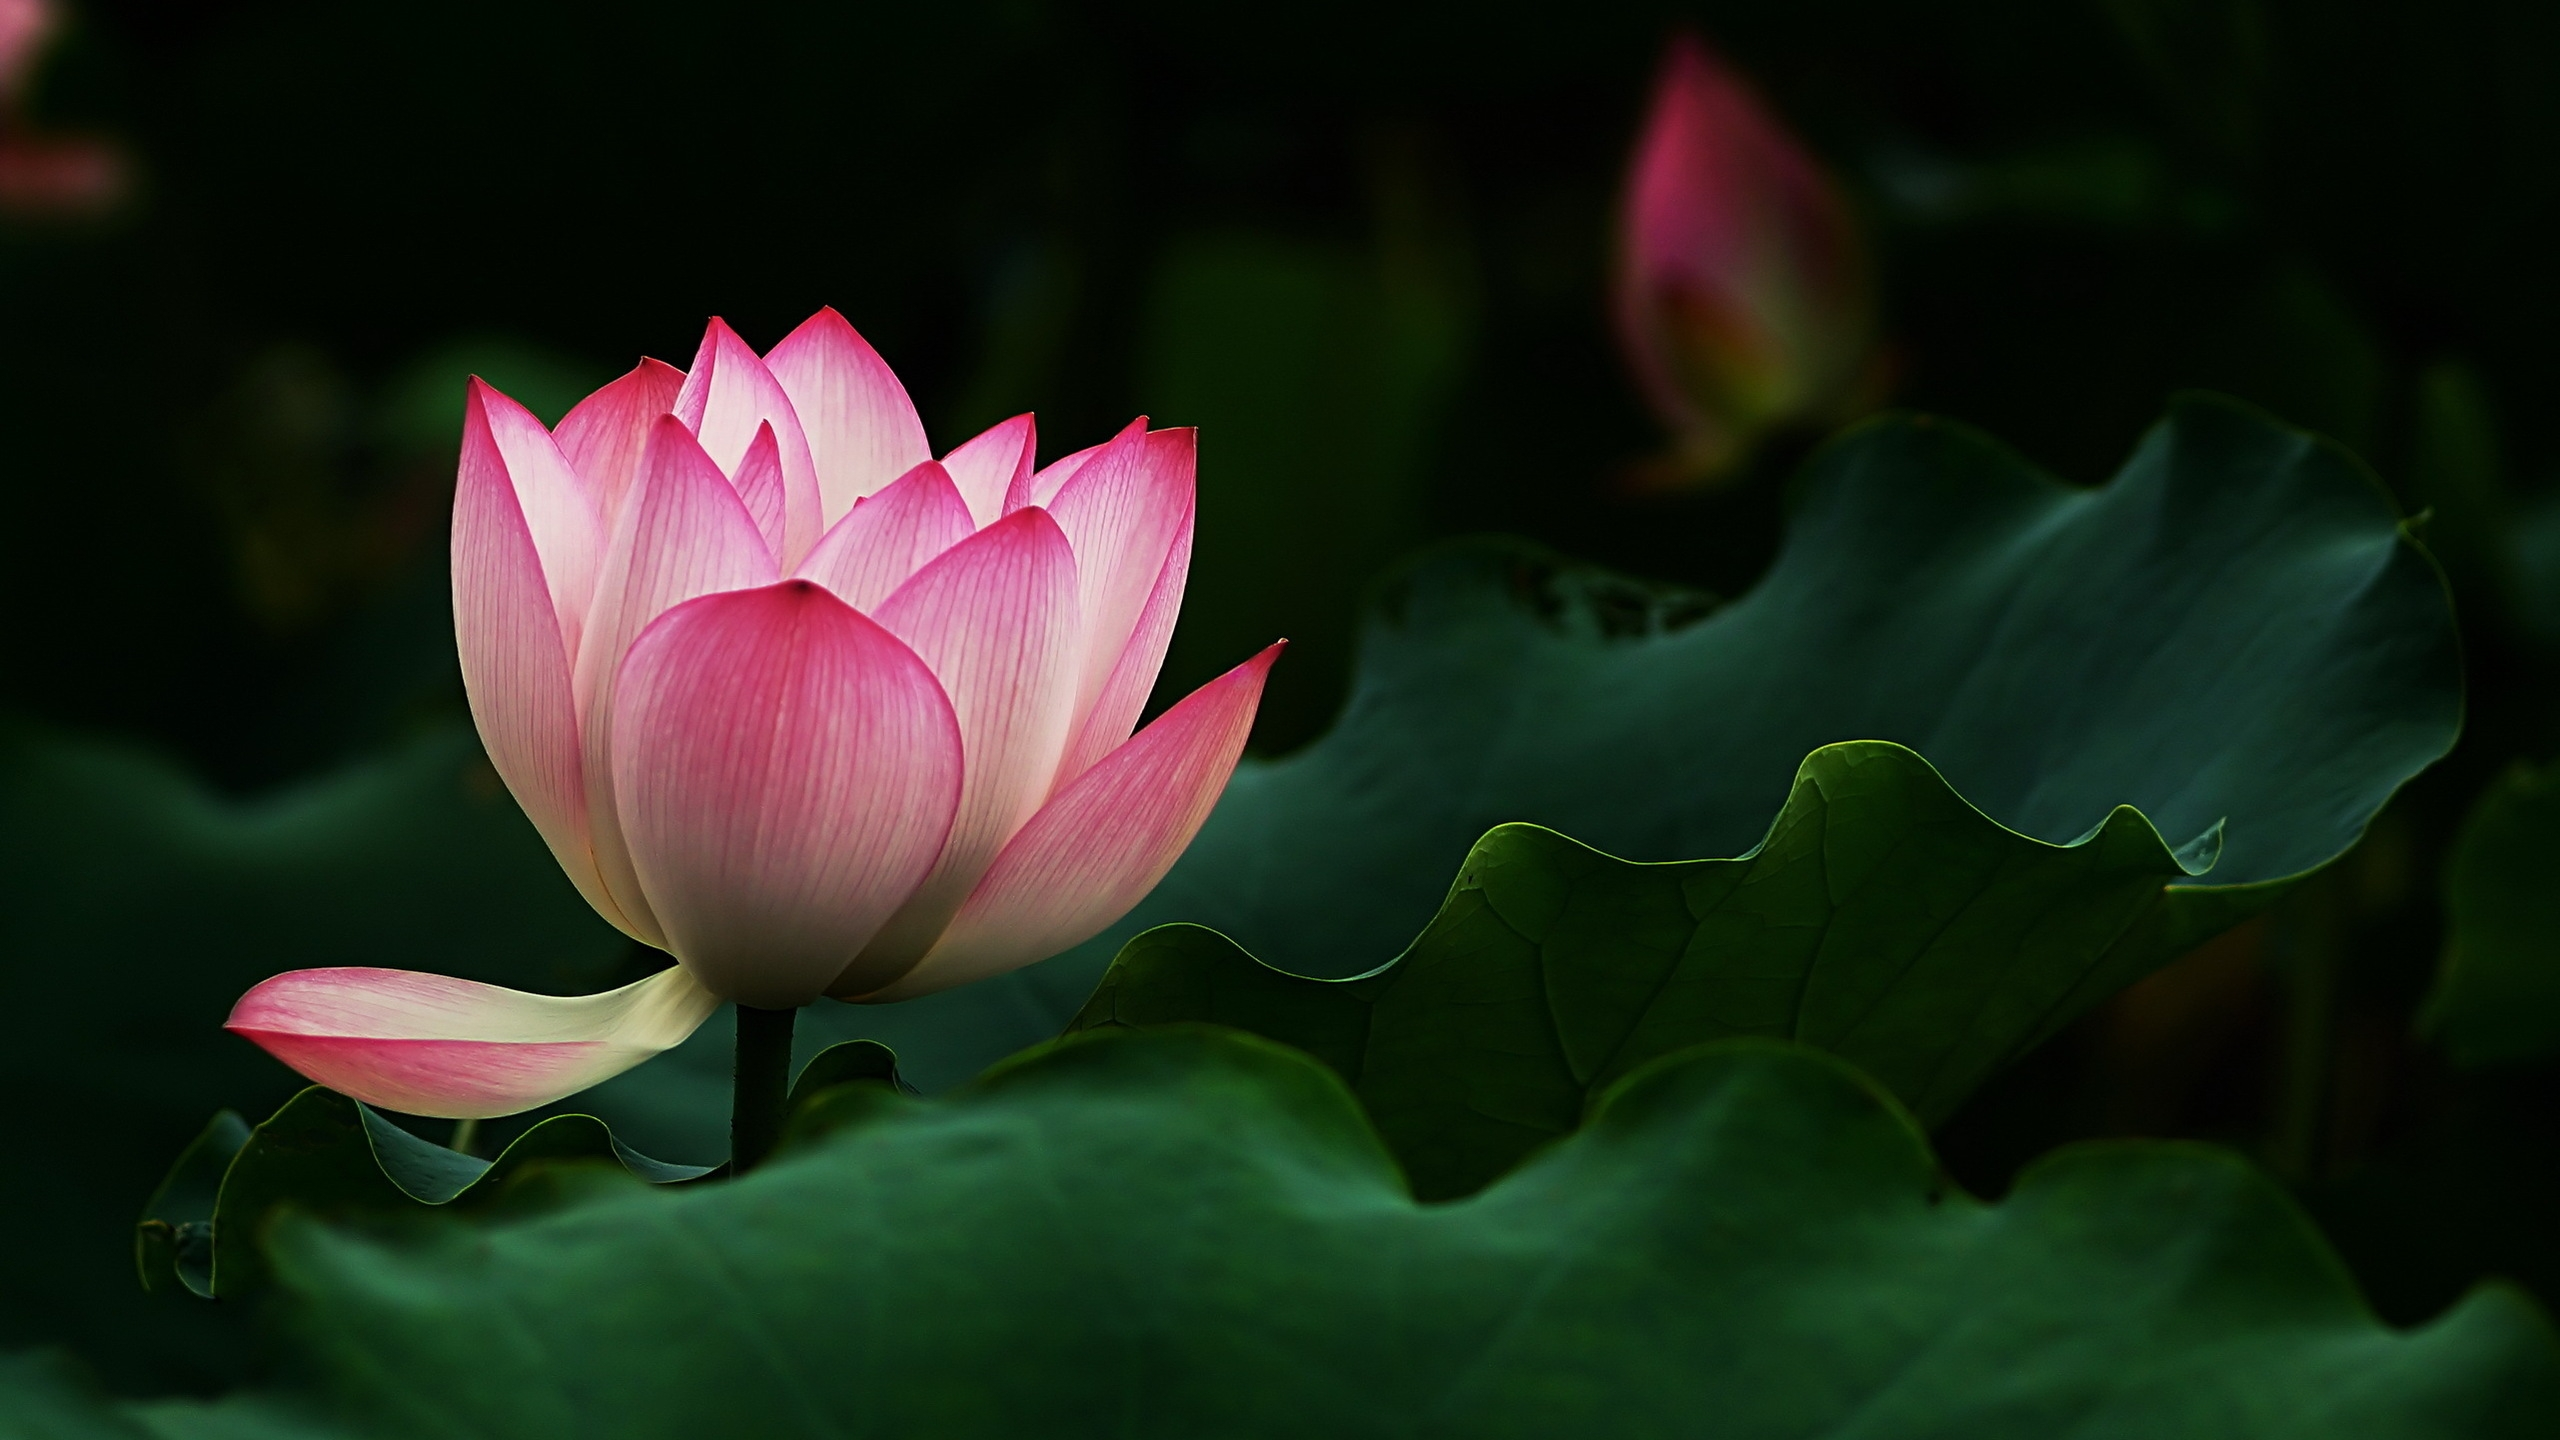 How to plant a lotus youtube - 2560x1440 Beautiful Lotus Flower